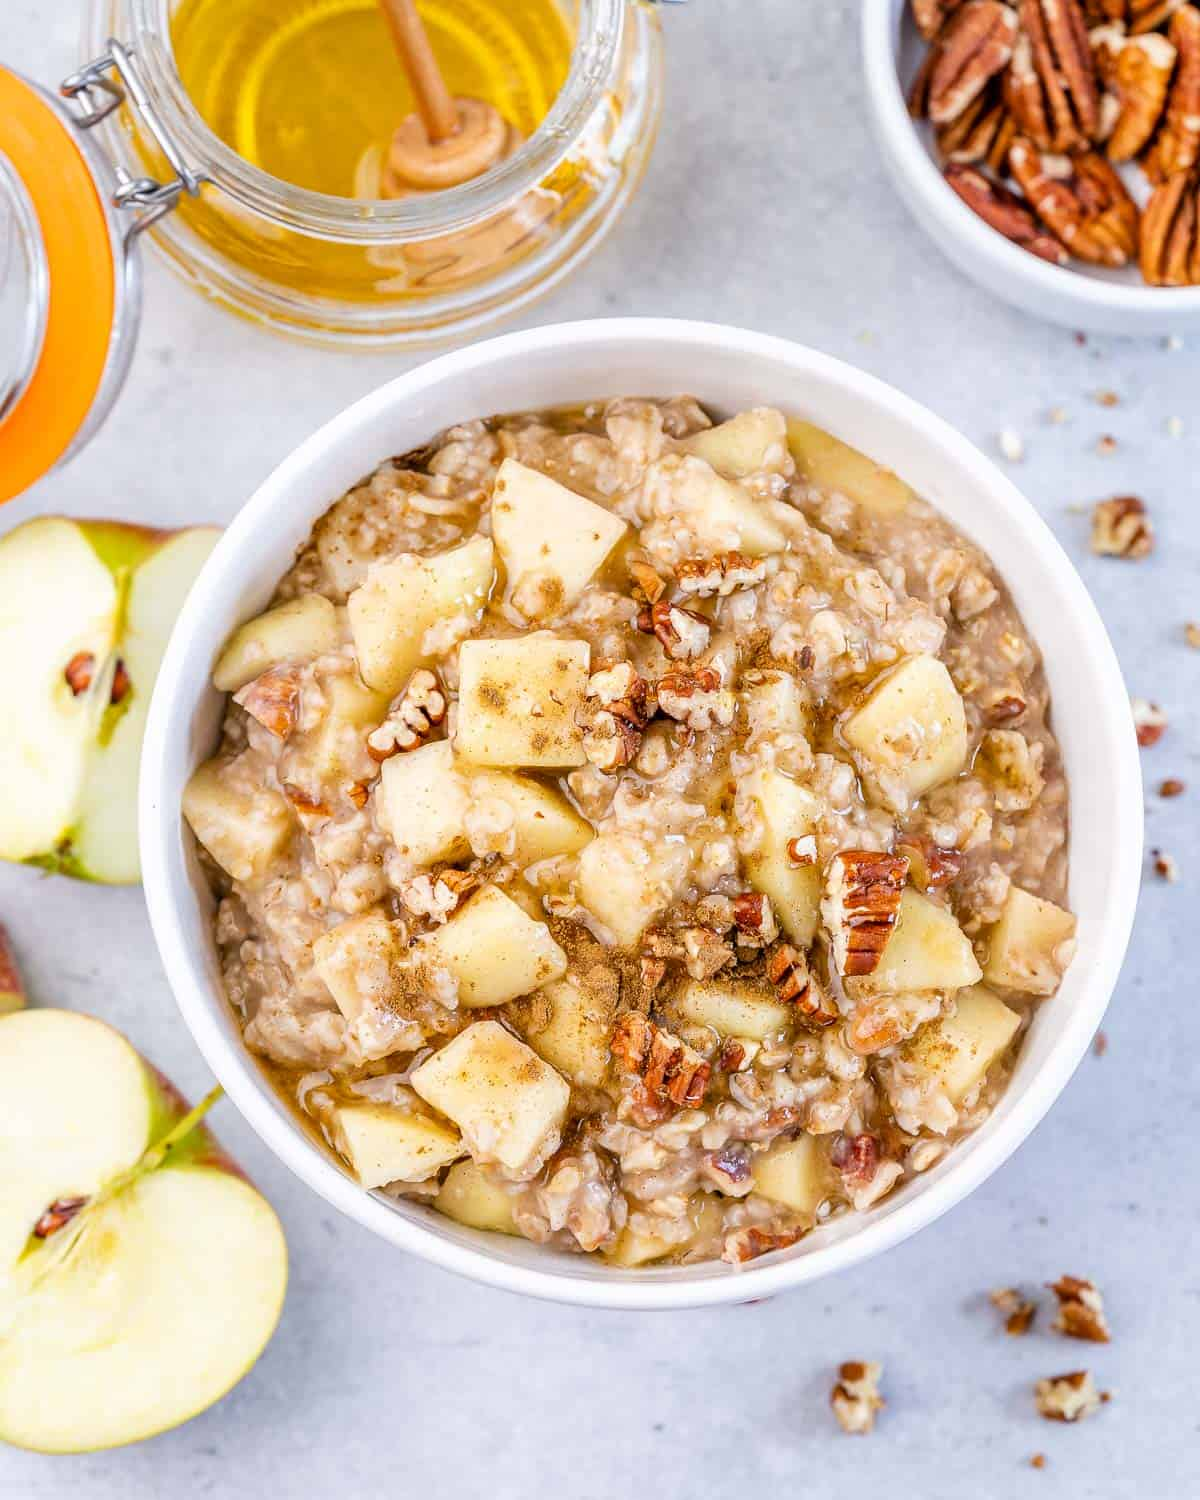 top view of apple cinnamon oatmeal with pecans